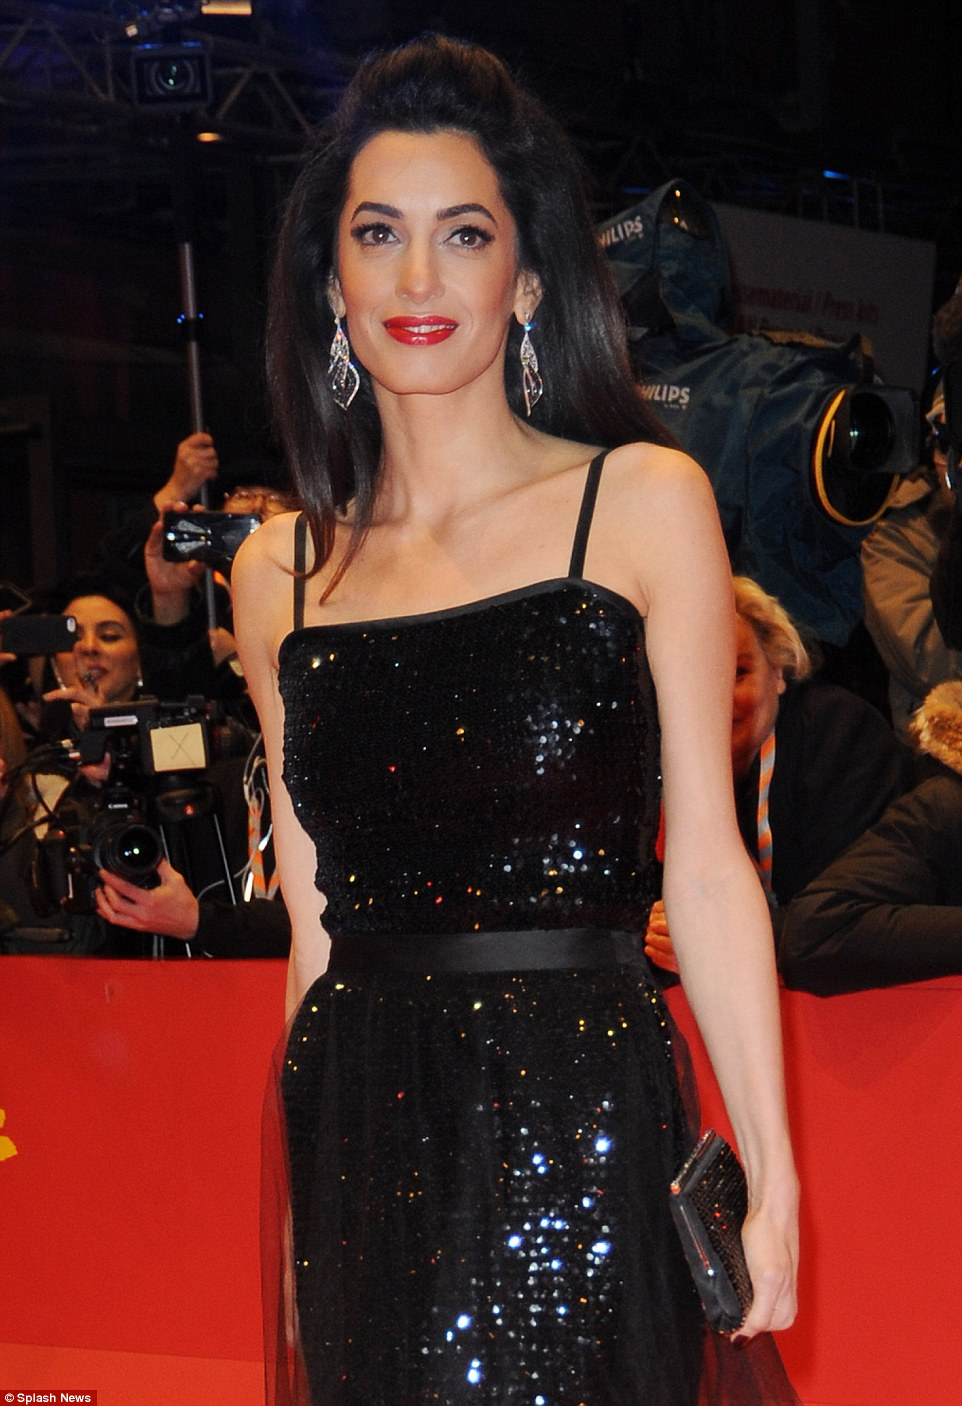 George Clooney and Amal on the red carpet for Hail Caesar Berlin Film Fest premiere 311A1D0200000578-3442938-image-m-169_1455220638973